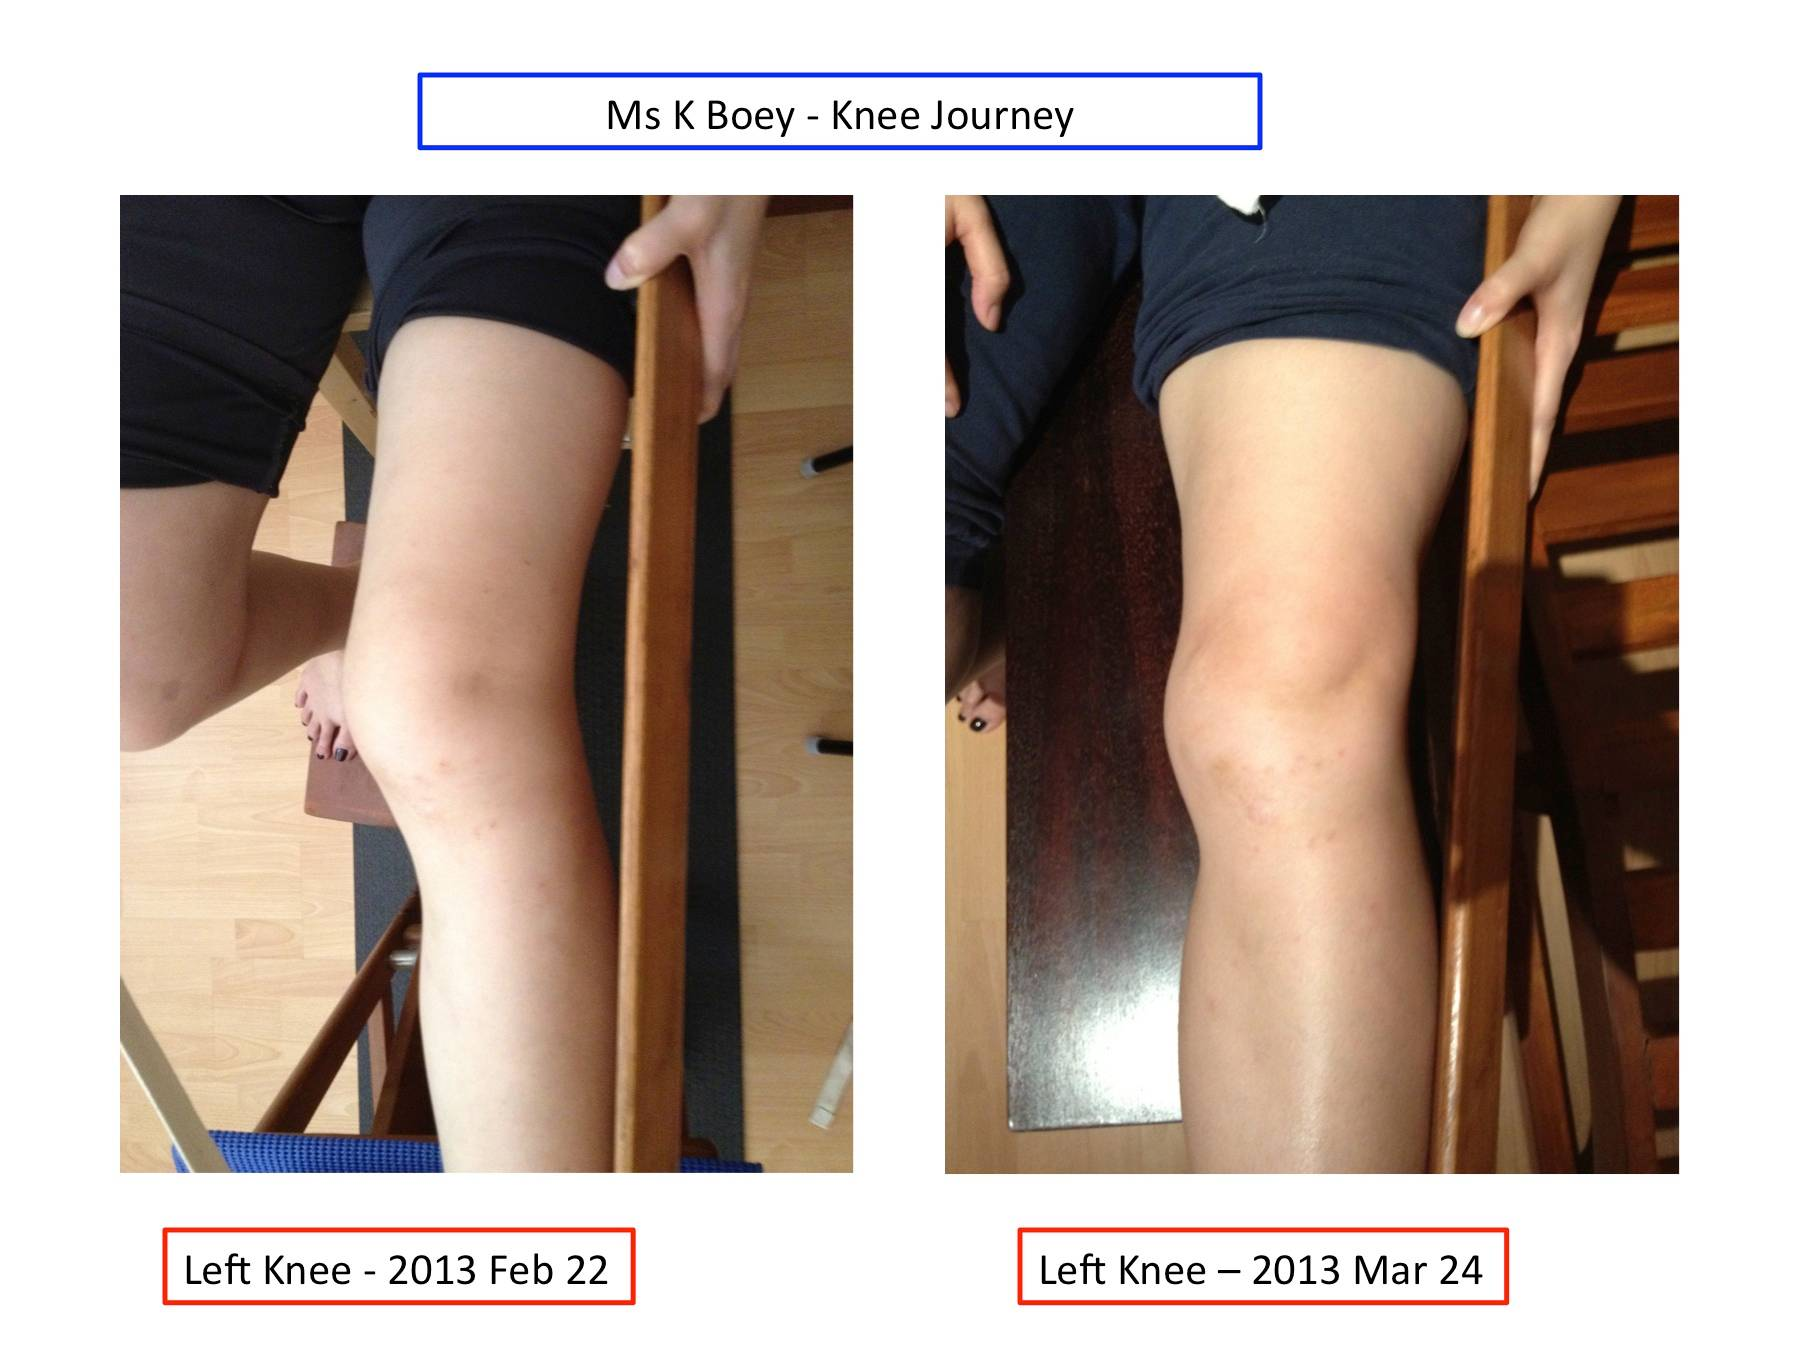 Left Knee Comparison